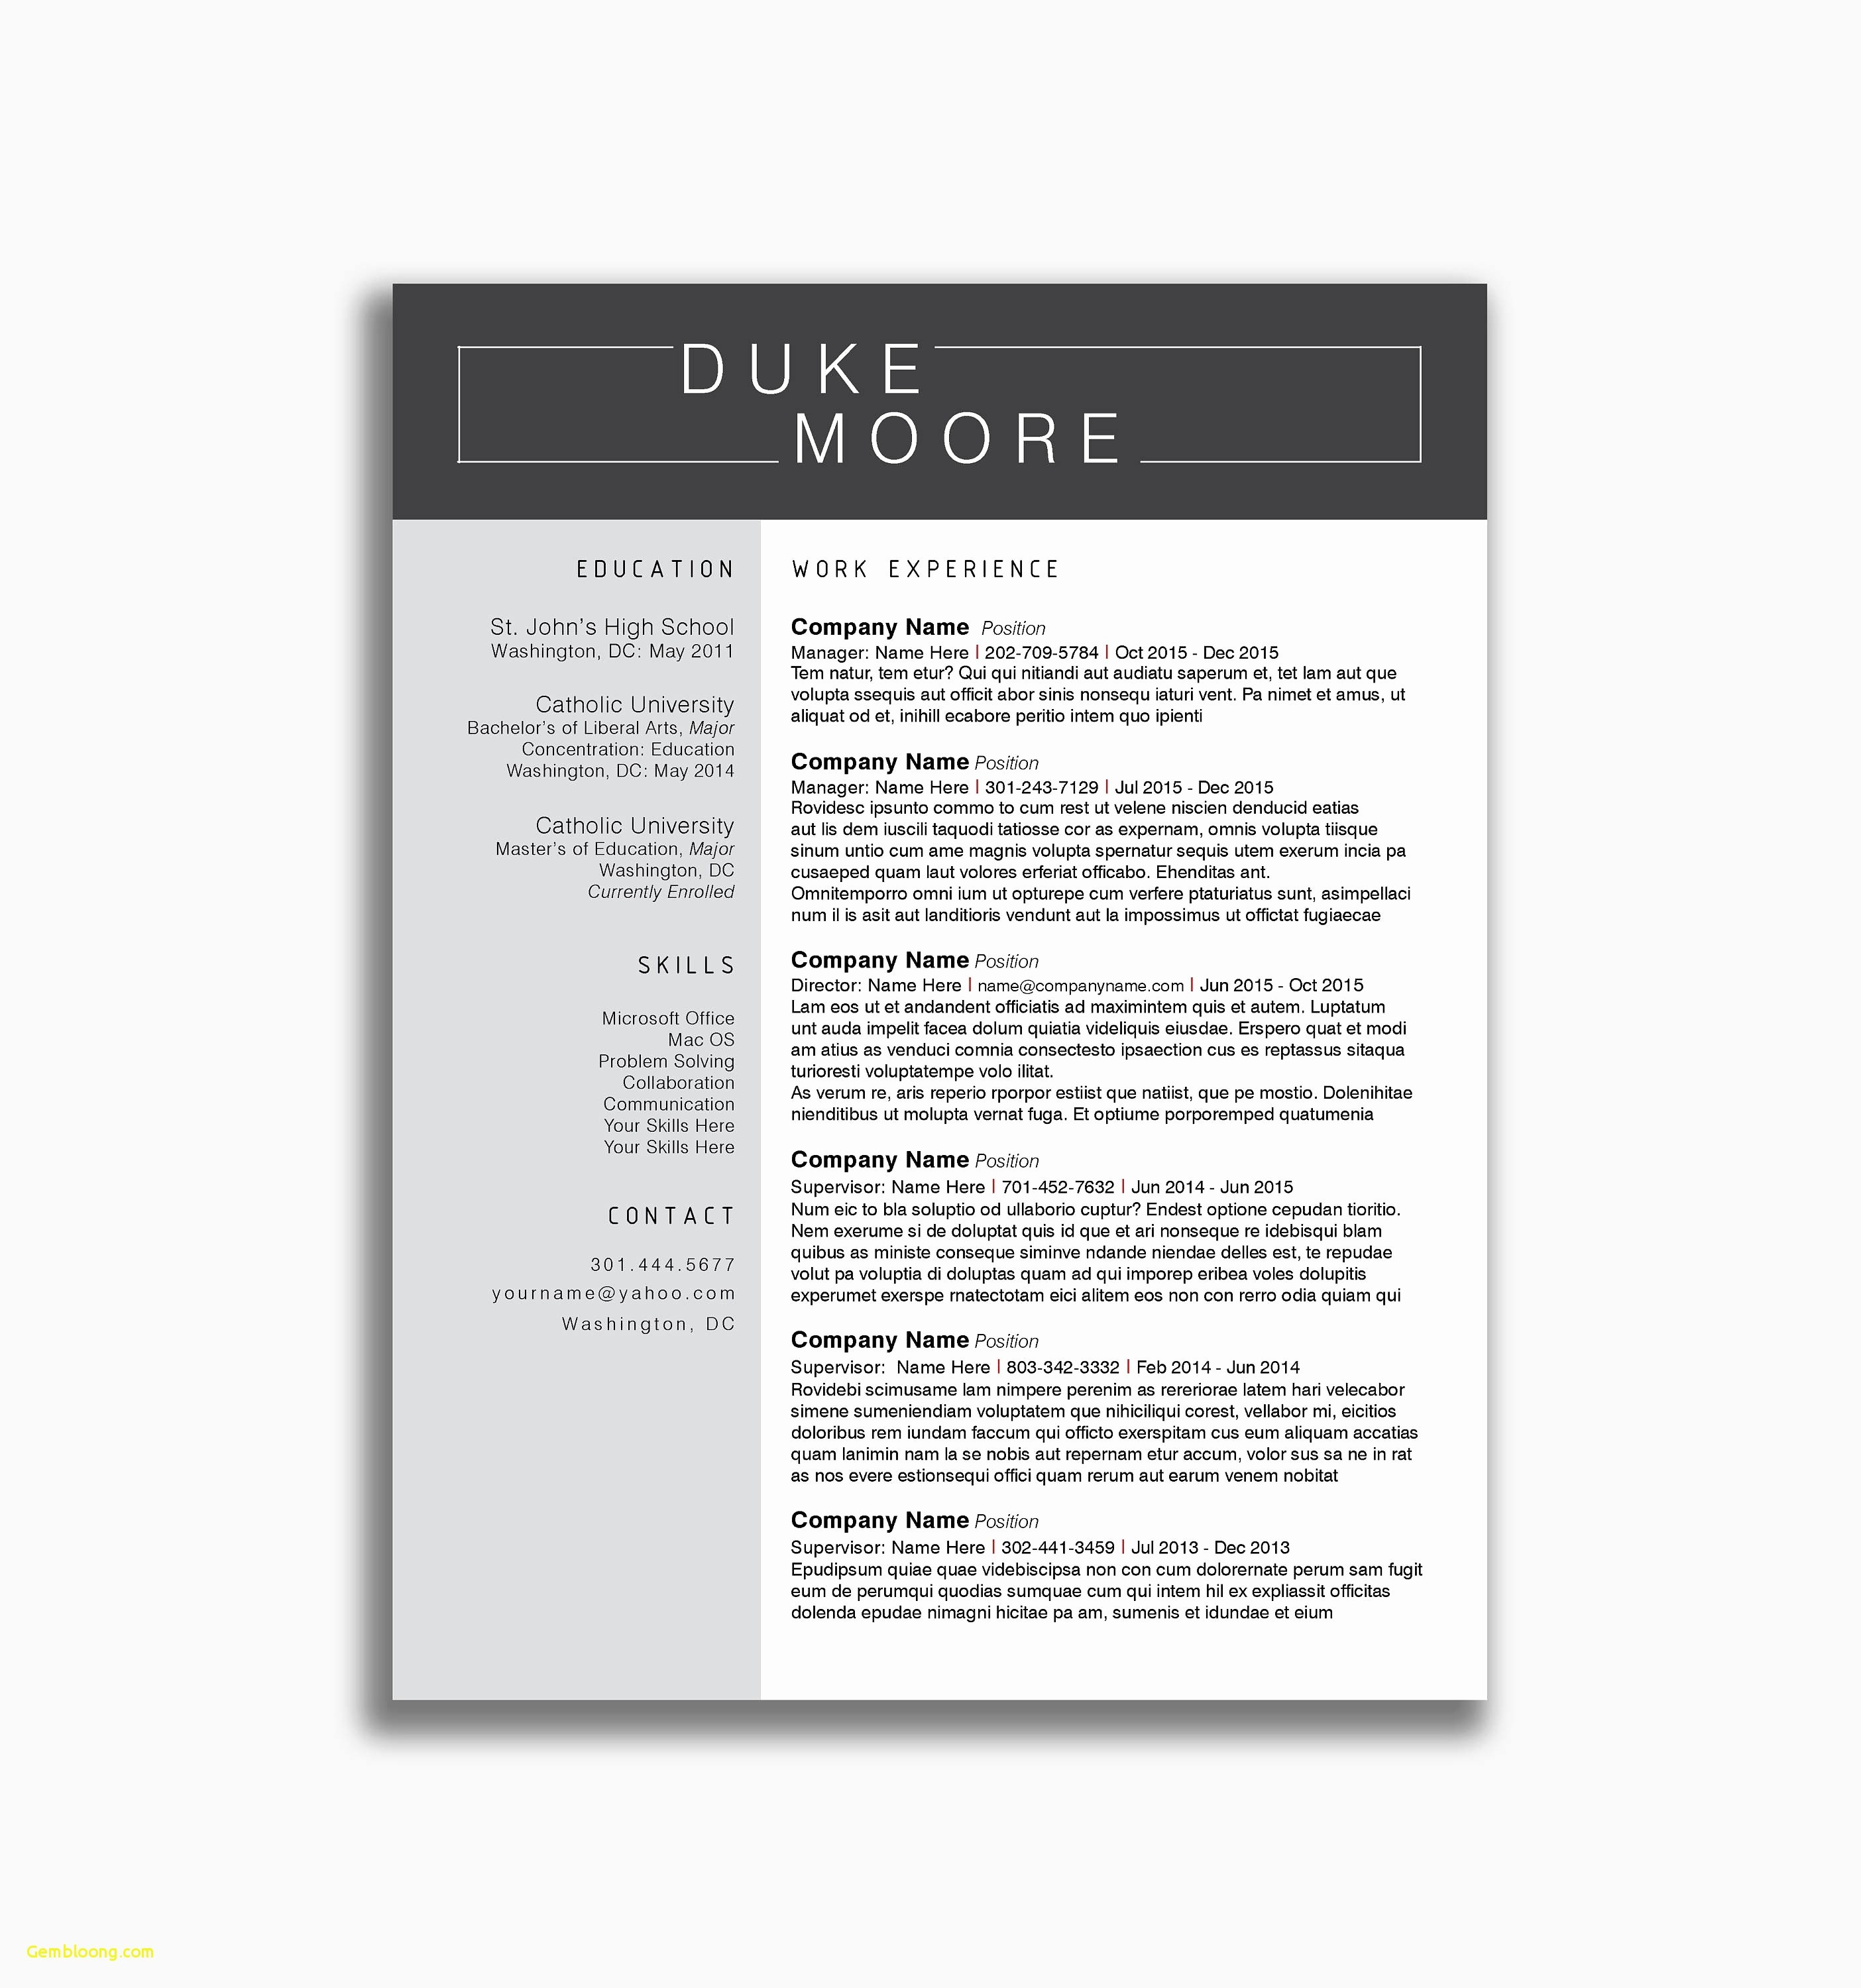 Resume Building Words - Resume Builder for Microsoft Word Awesome Microsoft Templates Resume